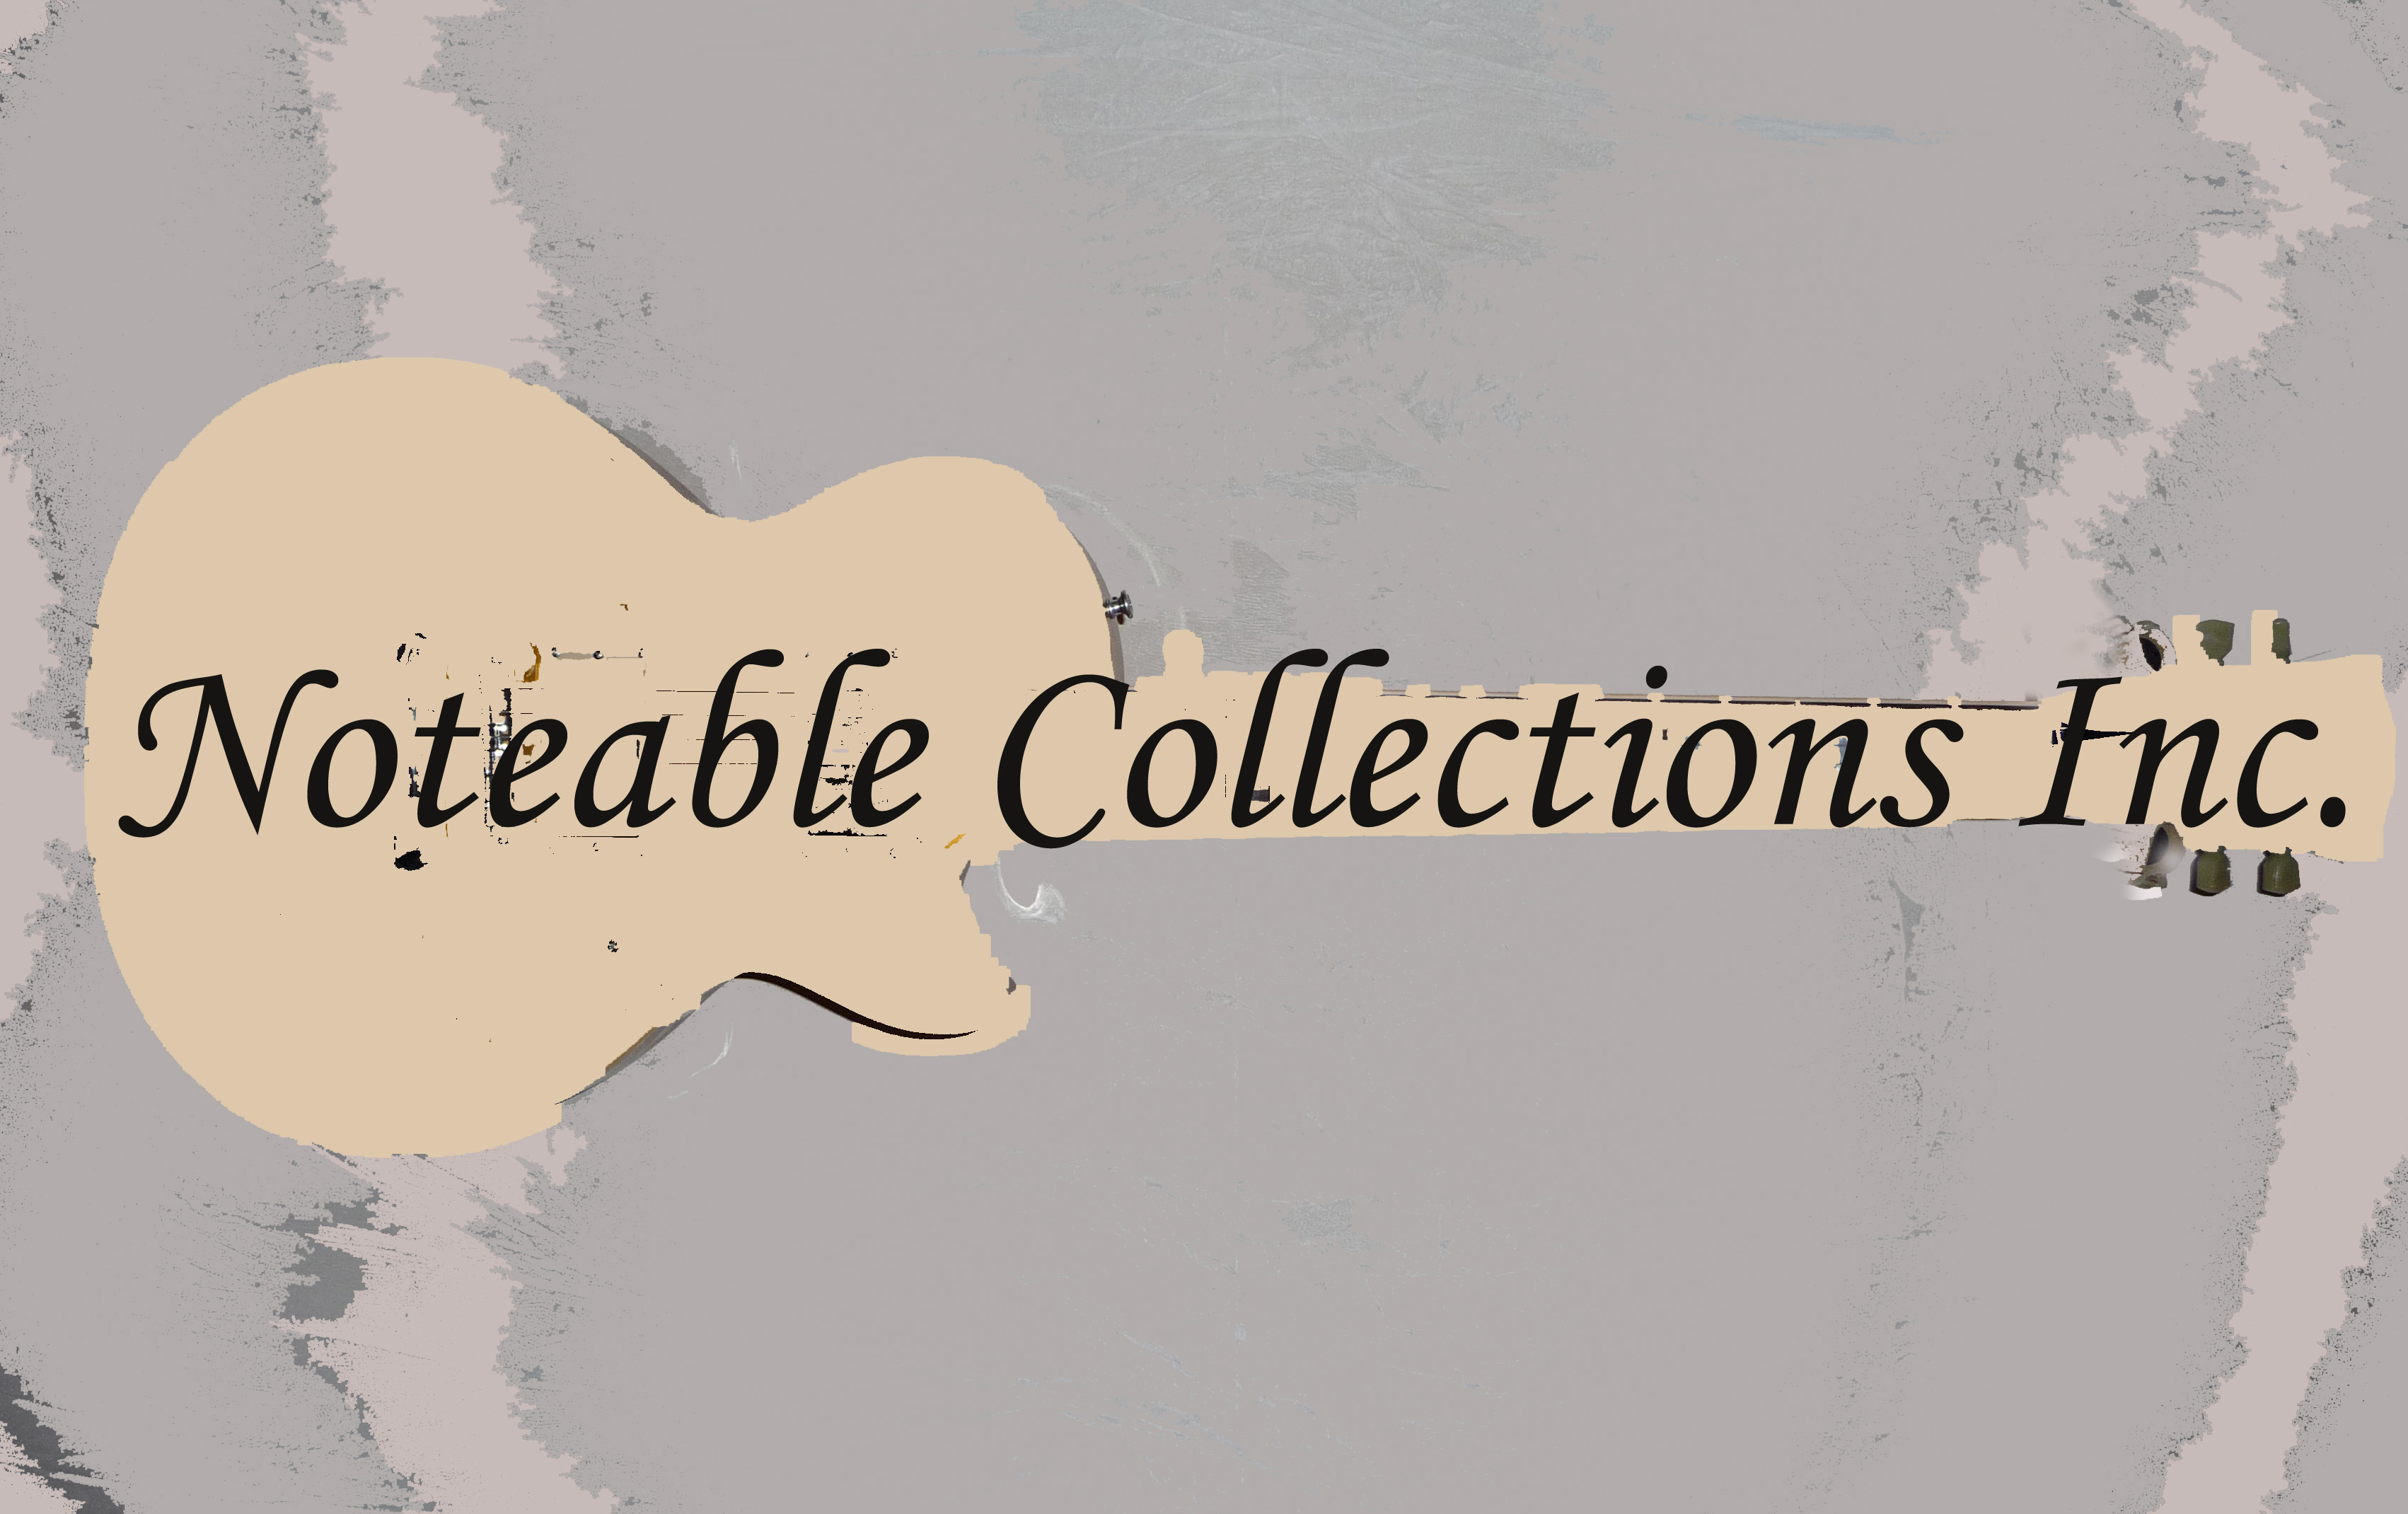 Noteable Collections Inc.